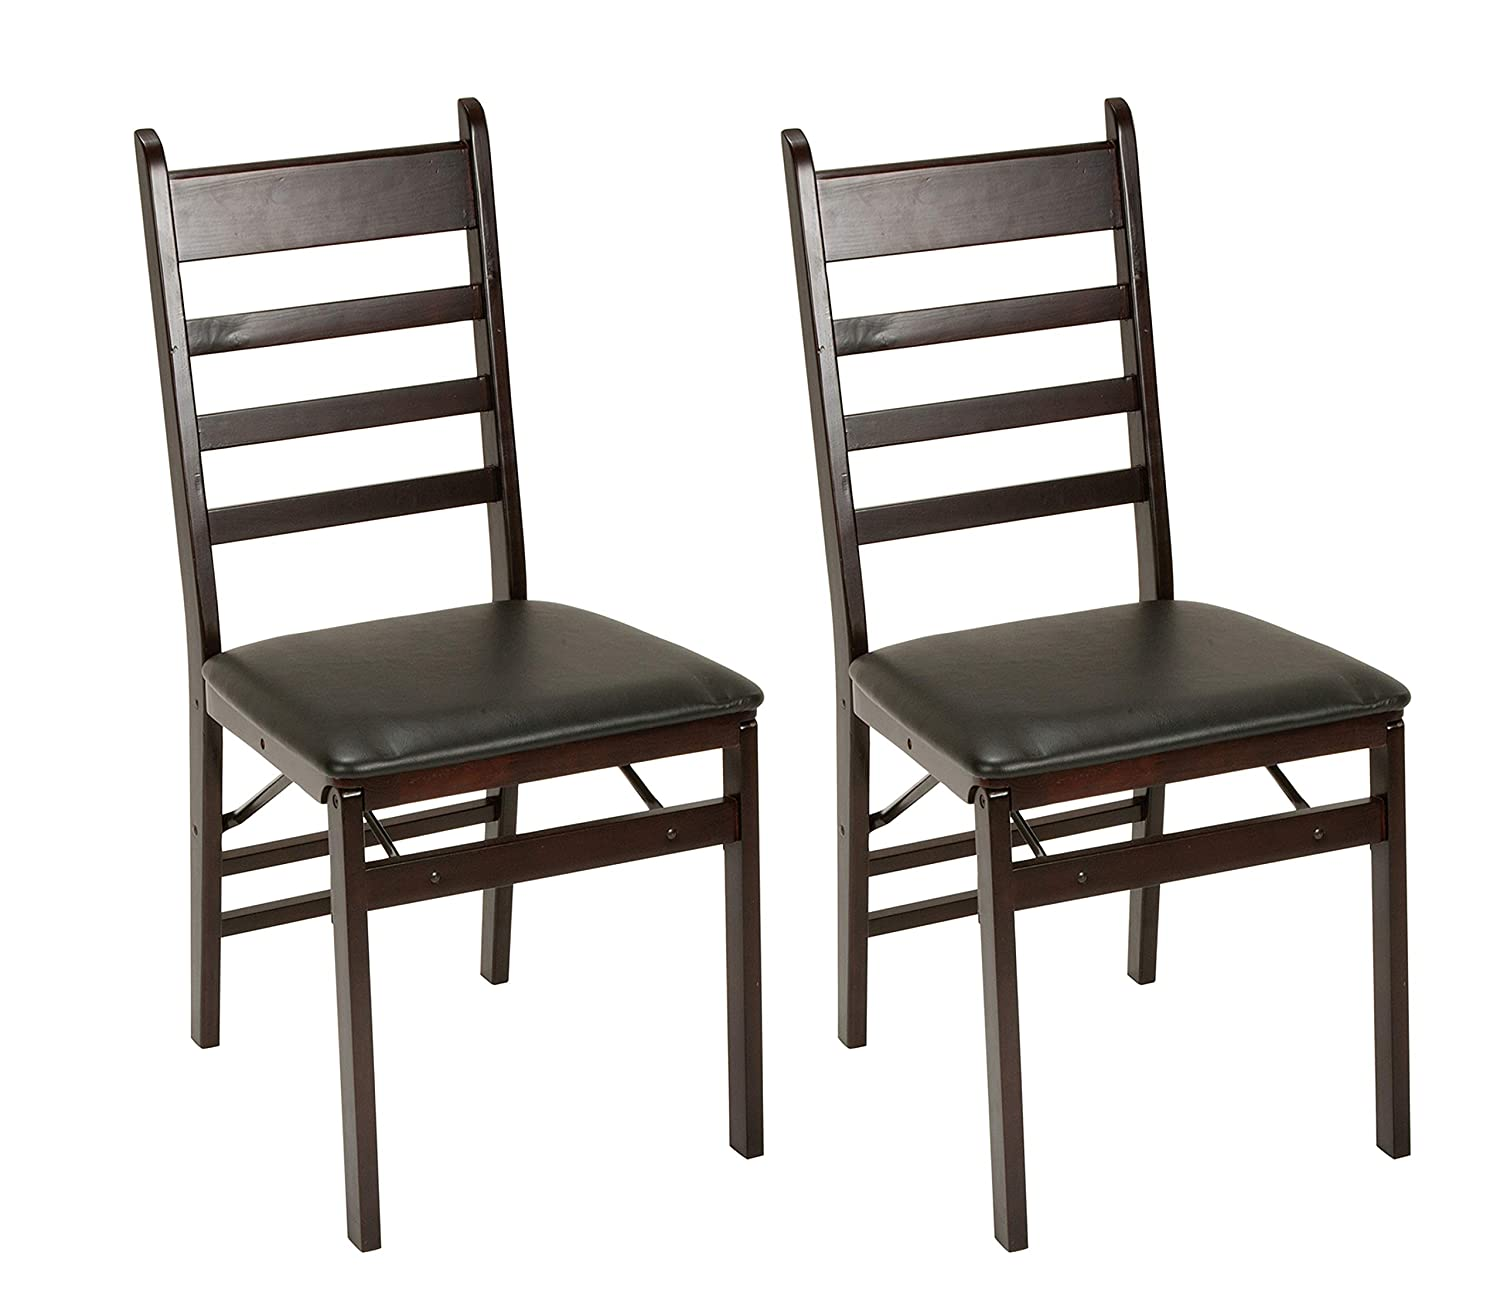 Cosco Espresso Wood Folding Chair with vinyl seat Ladder Back 2-pack